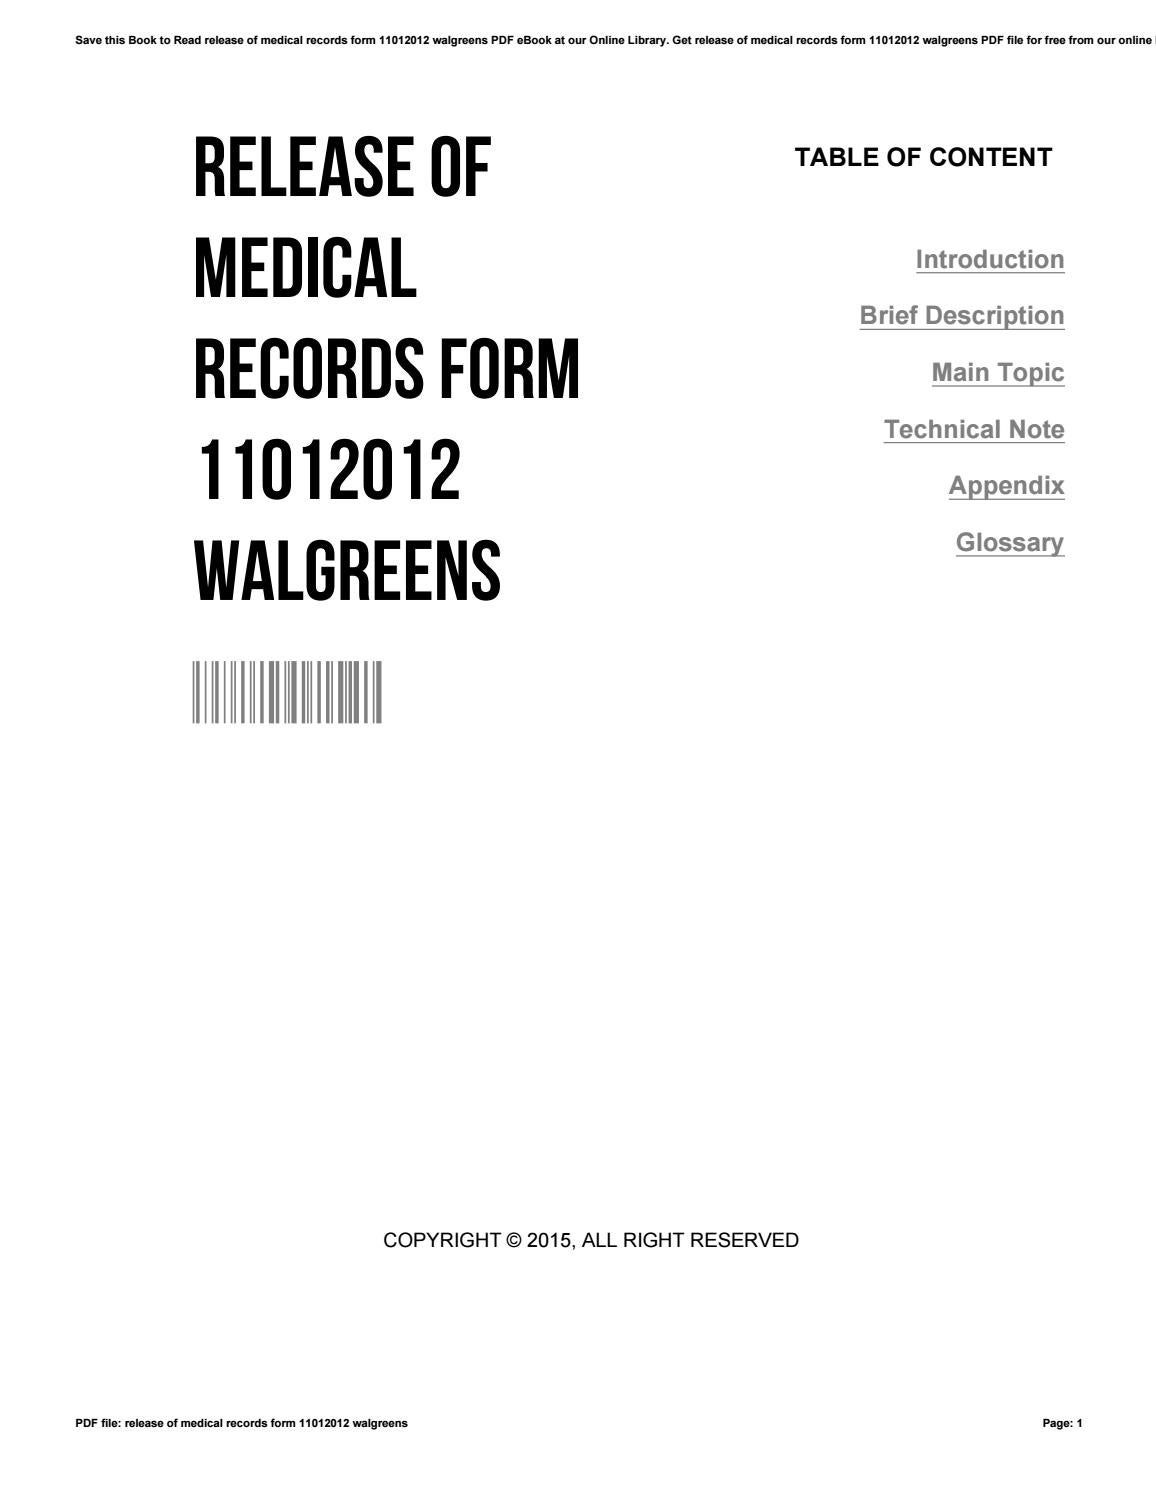 Release of medical records form 11012012 walgreens by